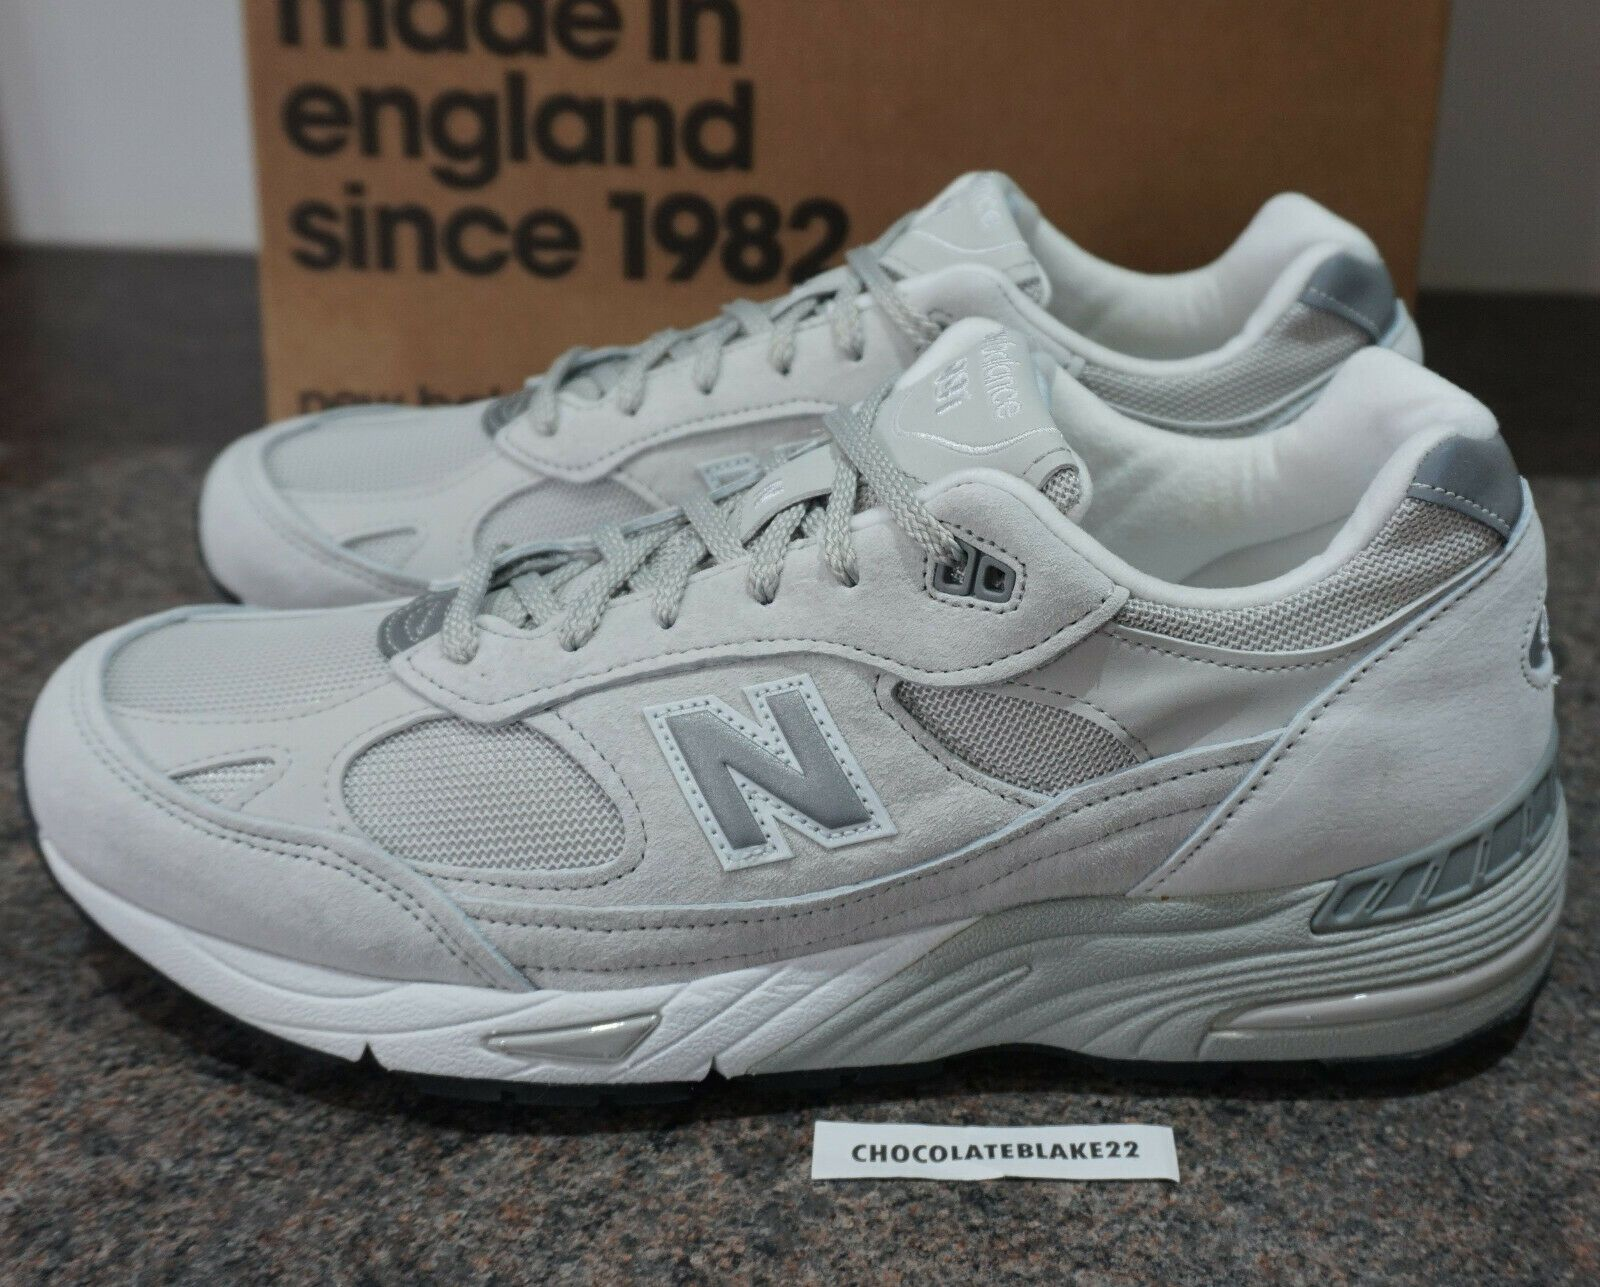 NEW BALANCE M991EKS MADE IN UK ENGLAND BLACK SILVER GREY 991 EKS 990 USA